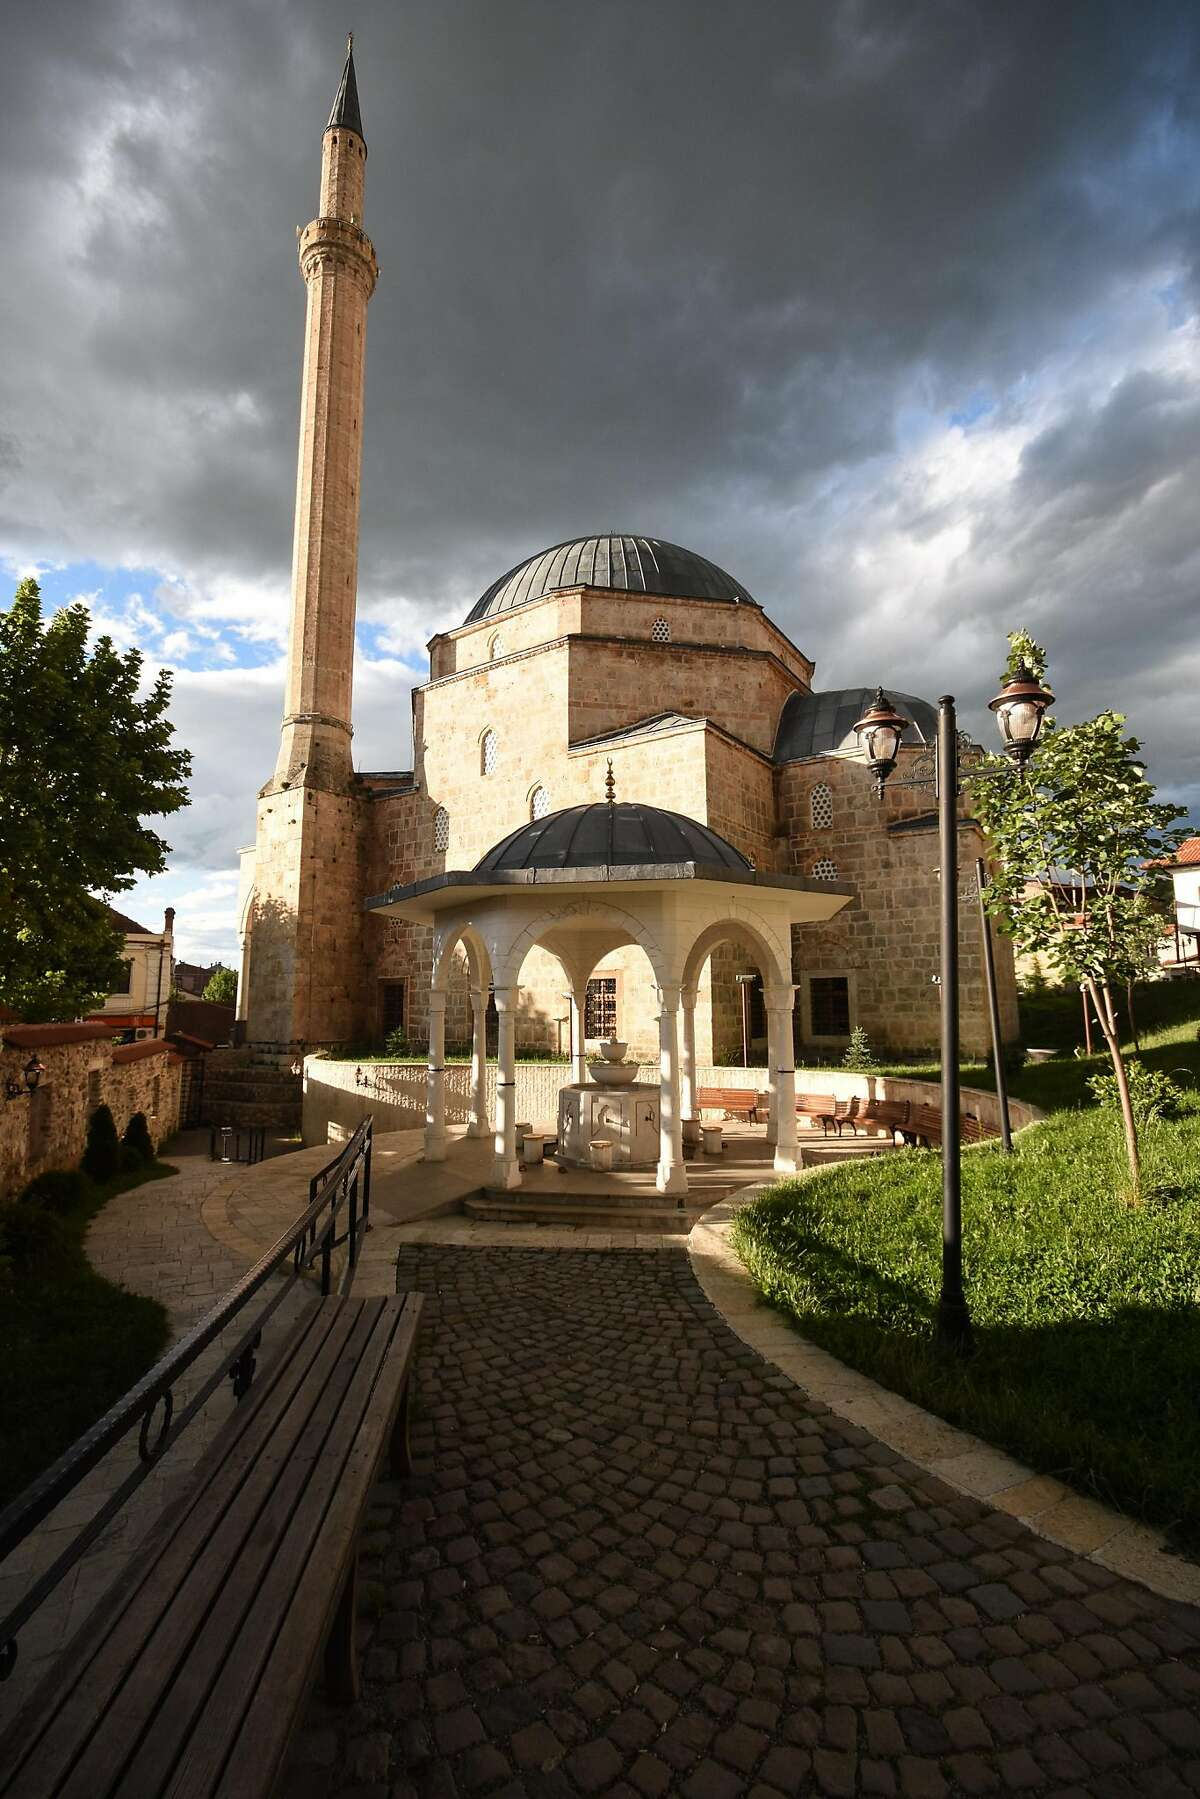 The Sinan Pasha Mosque is an Ottoman mosque in the Old City of Prizren.